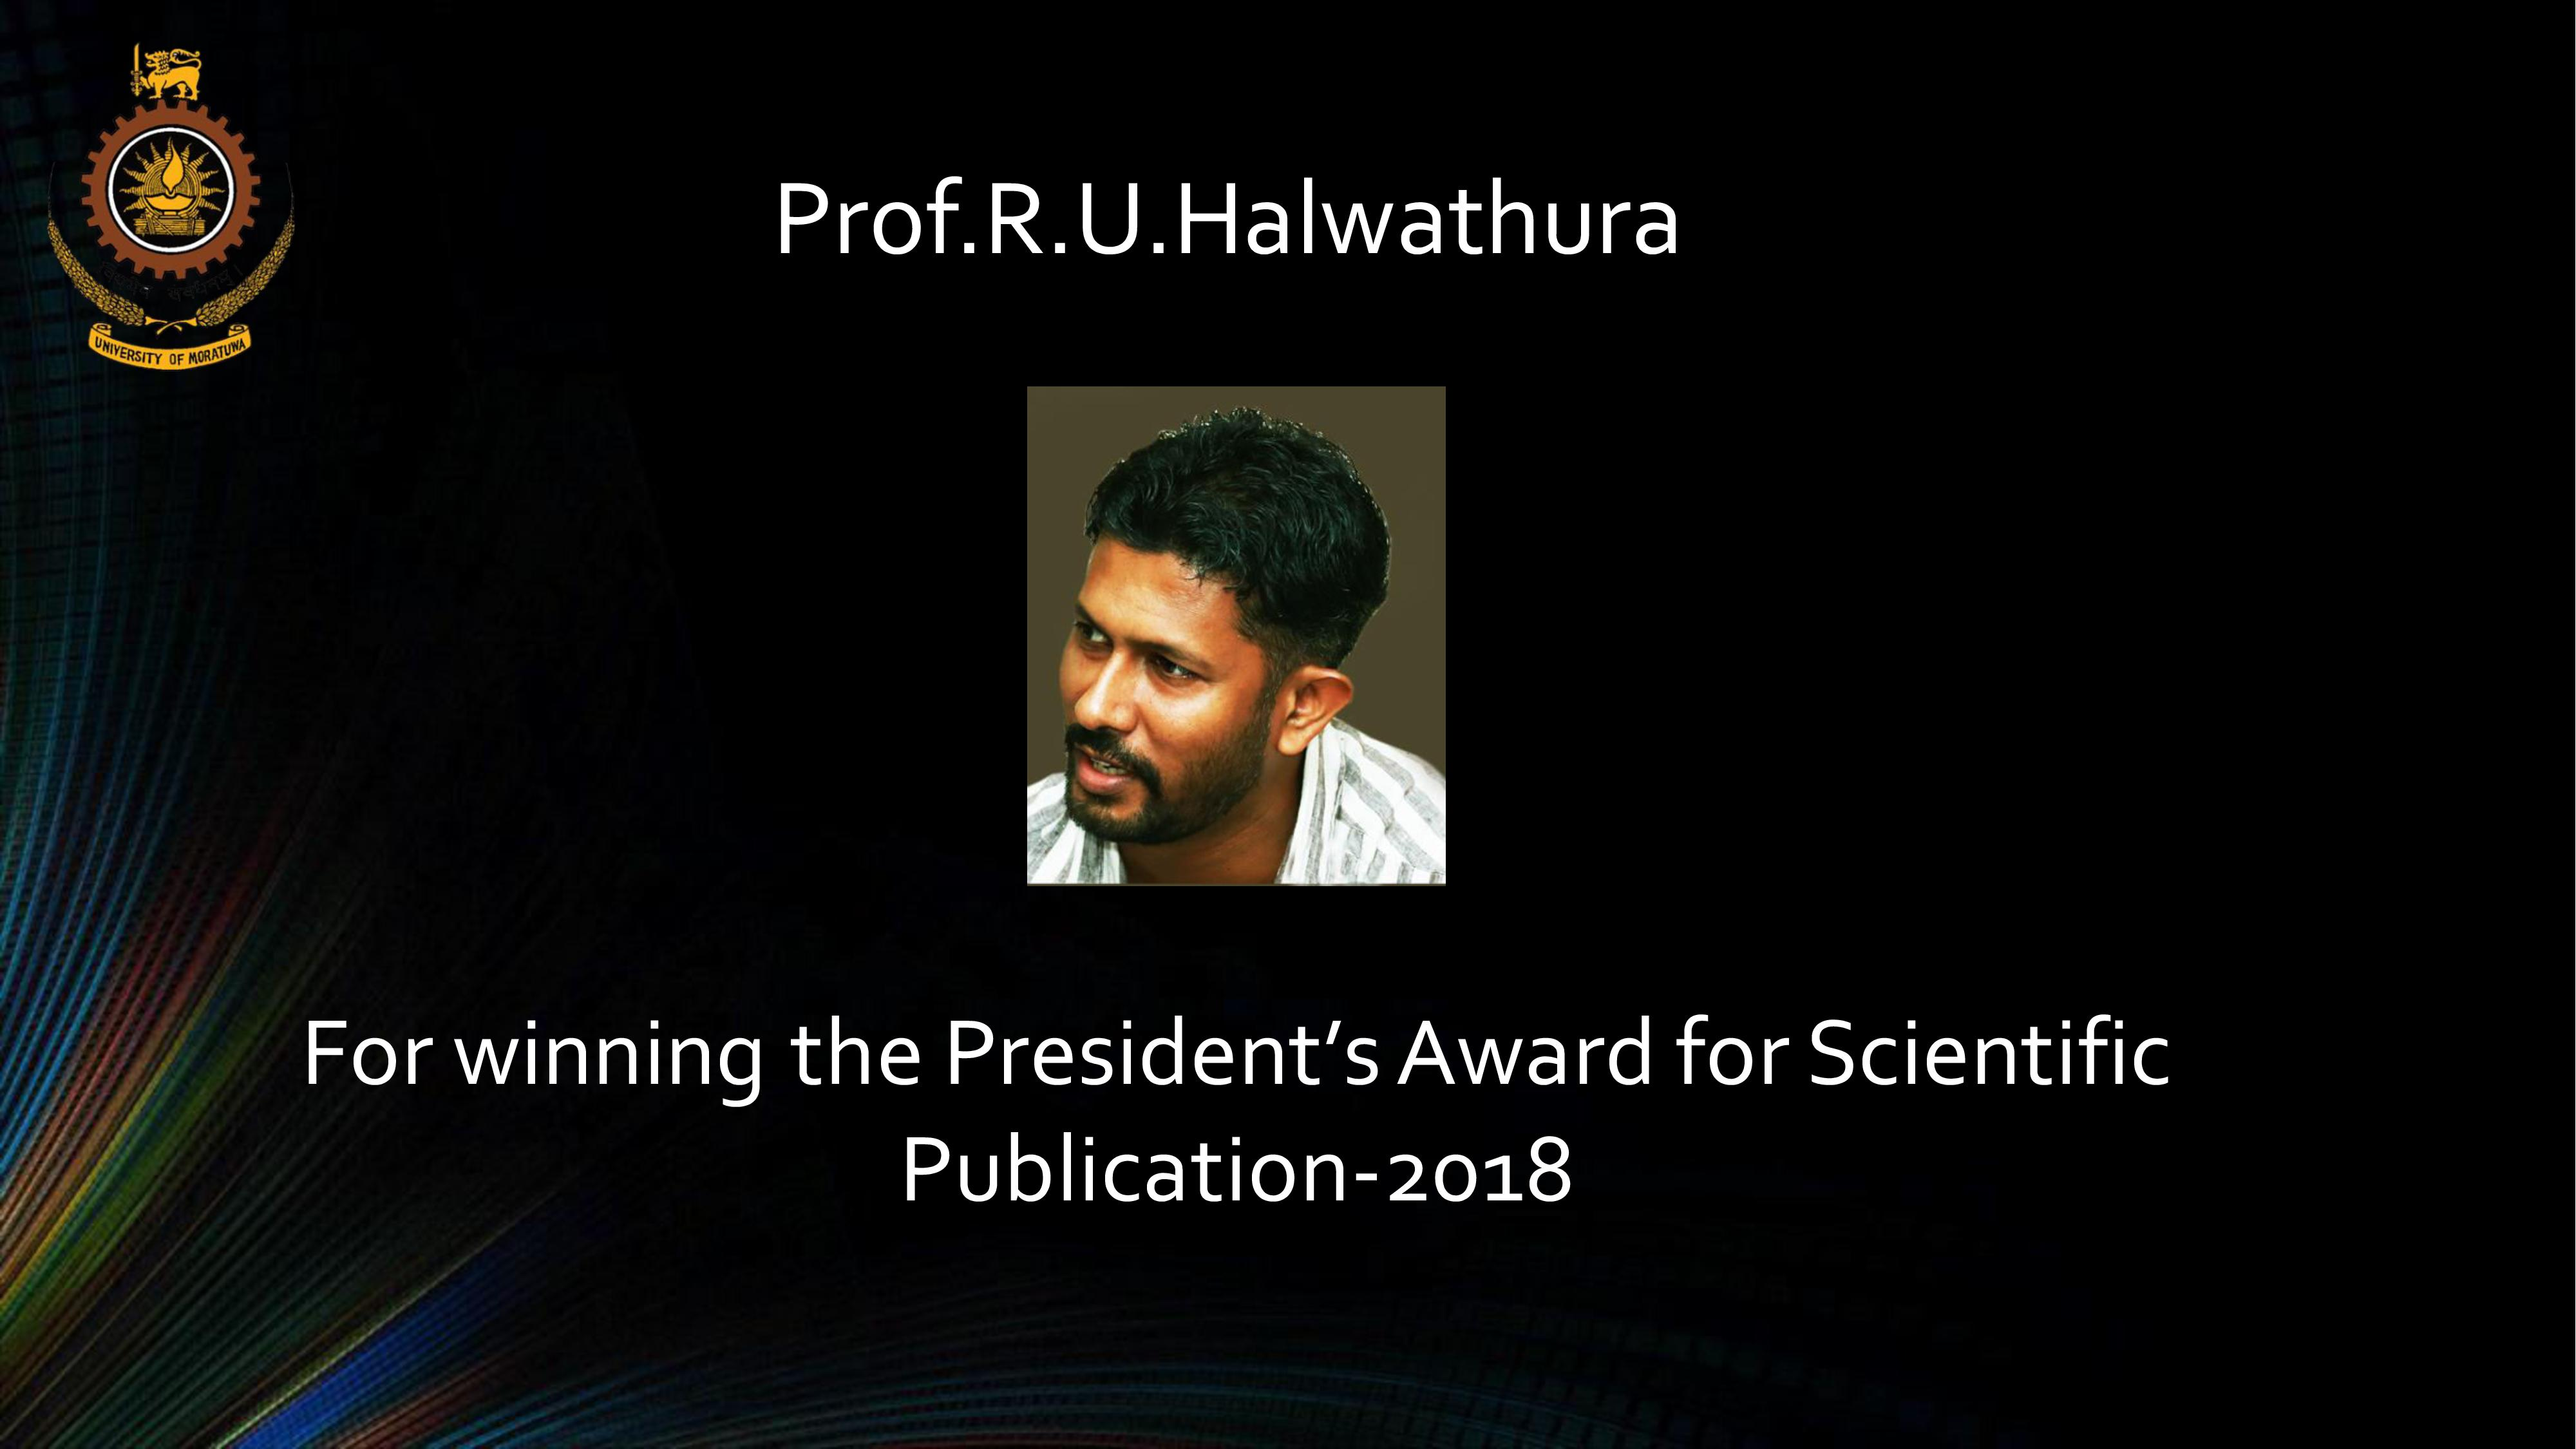 Winning the President's Award for Scientific Publication 2018